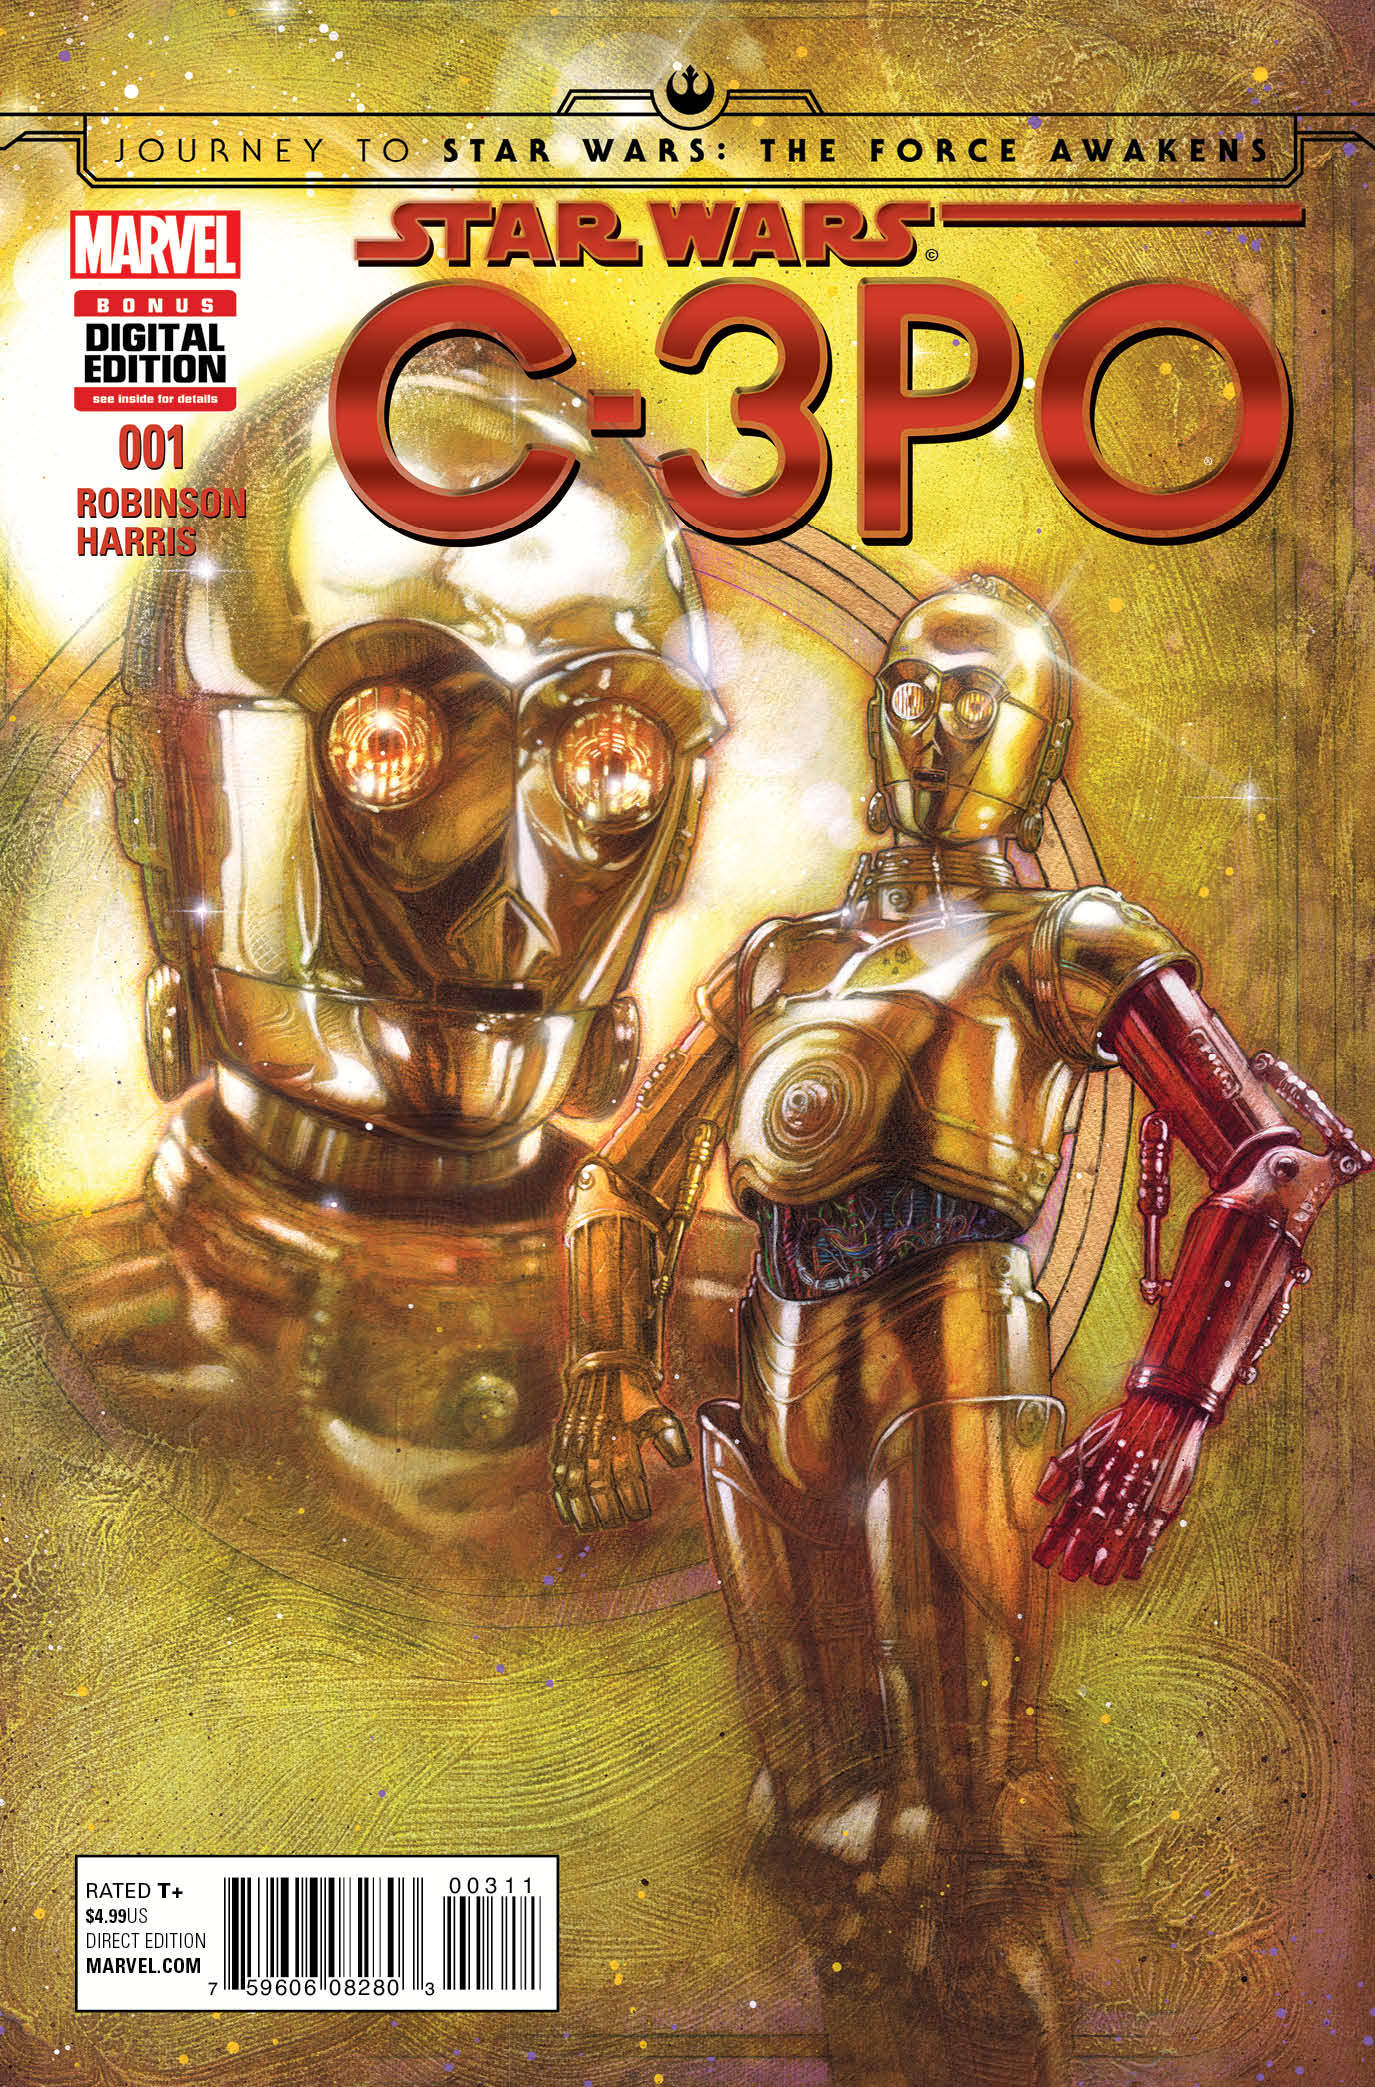 The comic book staring C3PO